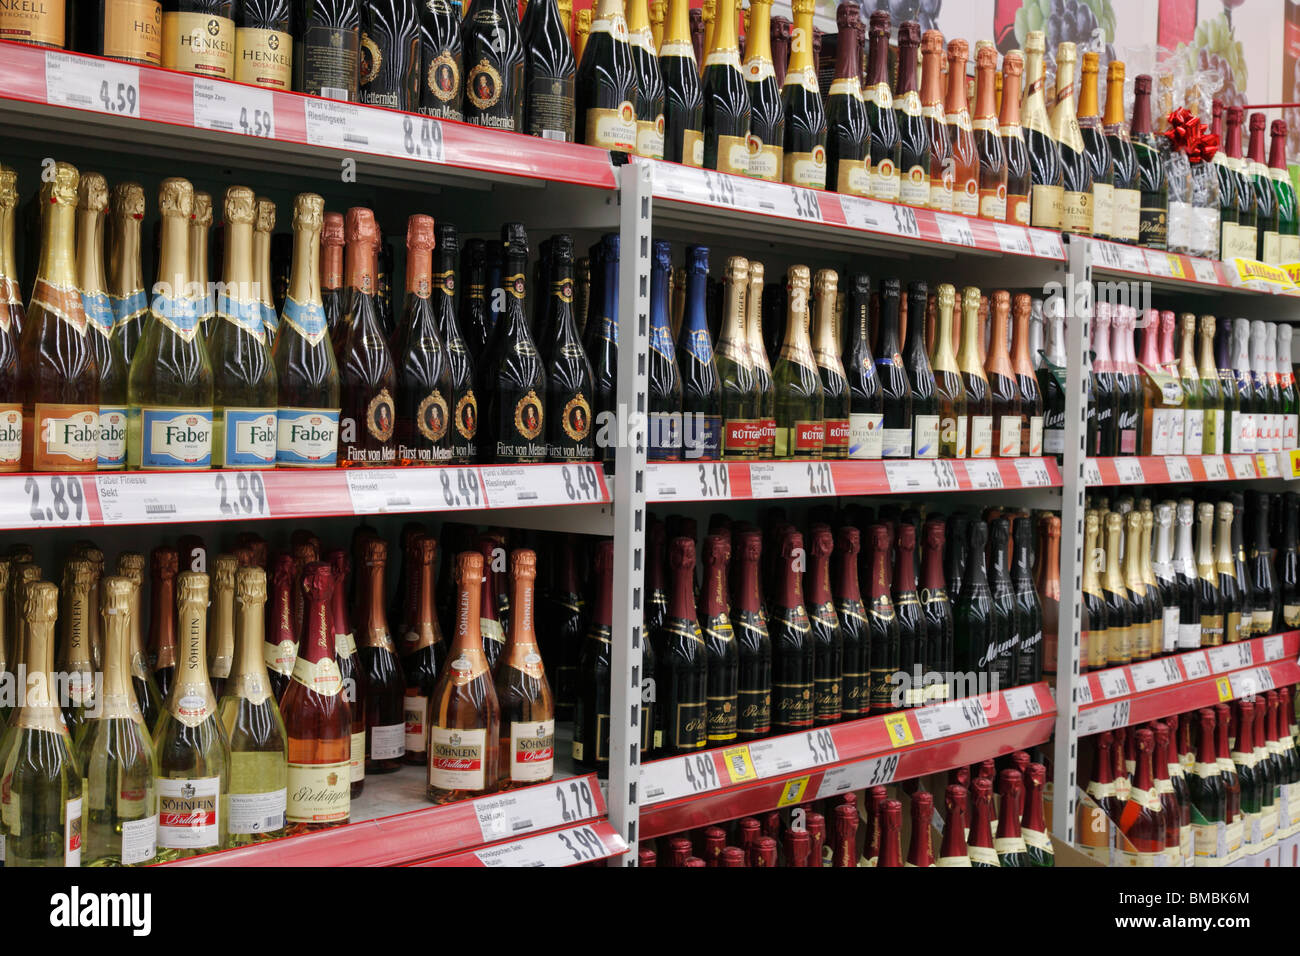 champagne and sparkling wine shelf in a supermarket - Stock Image